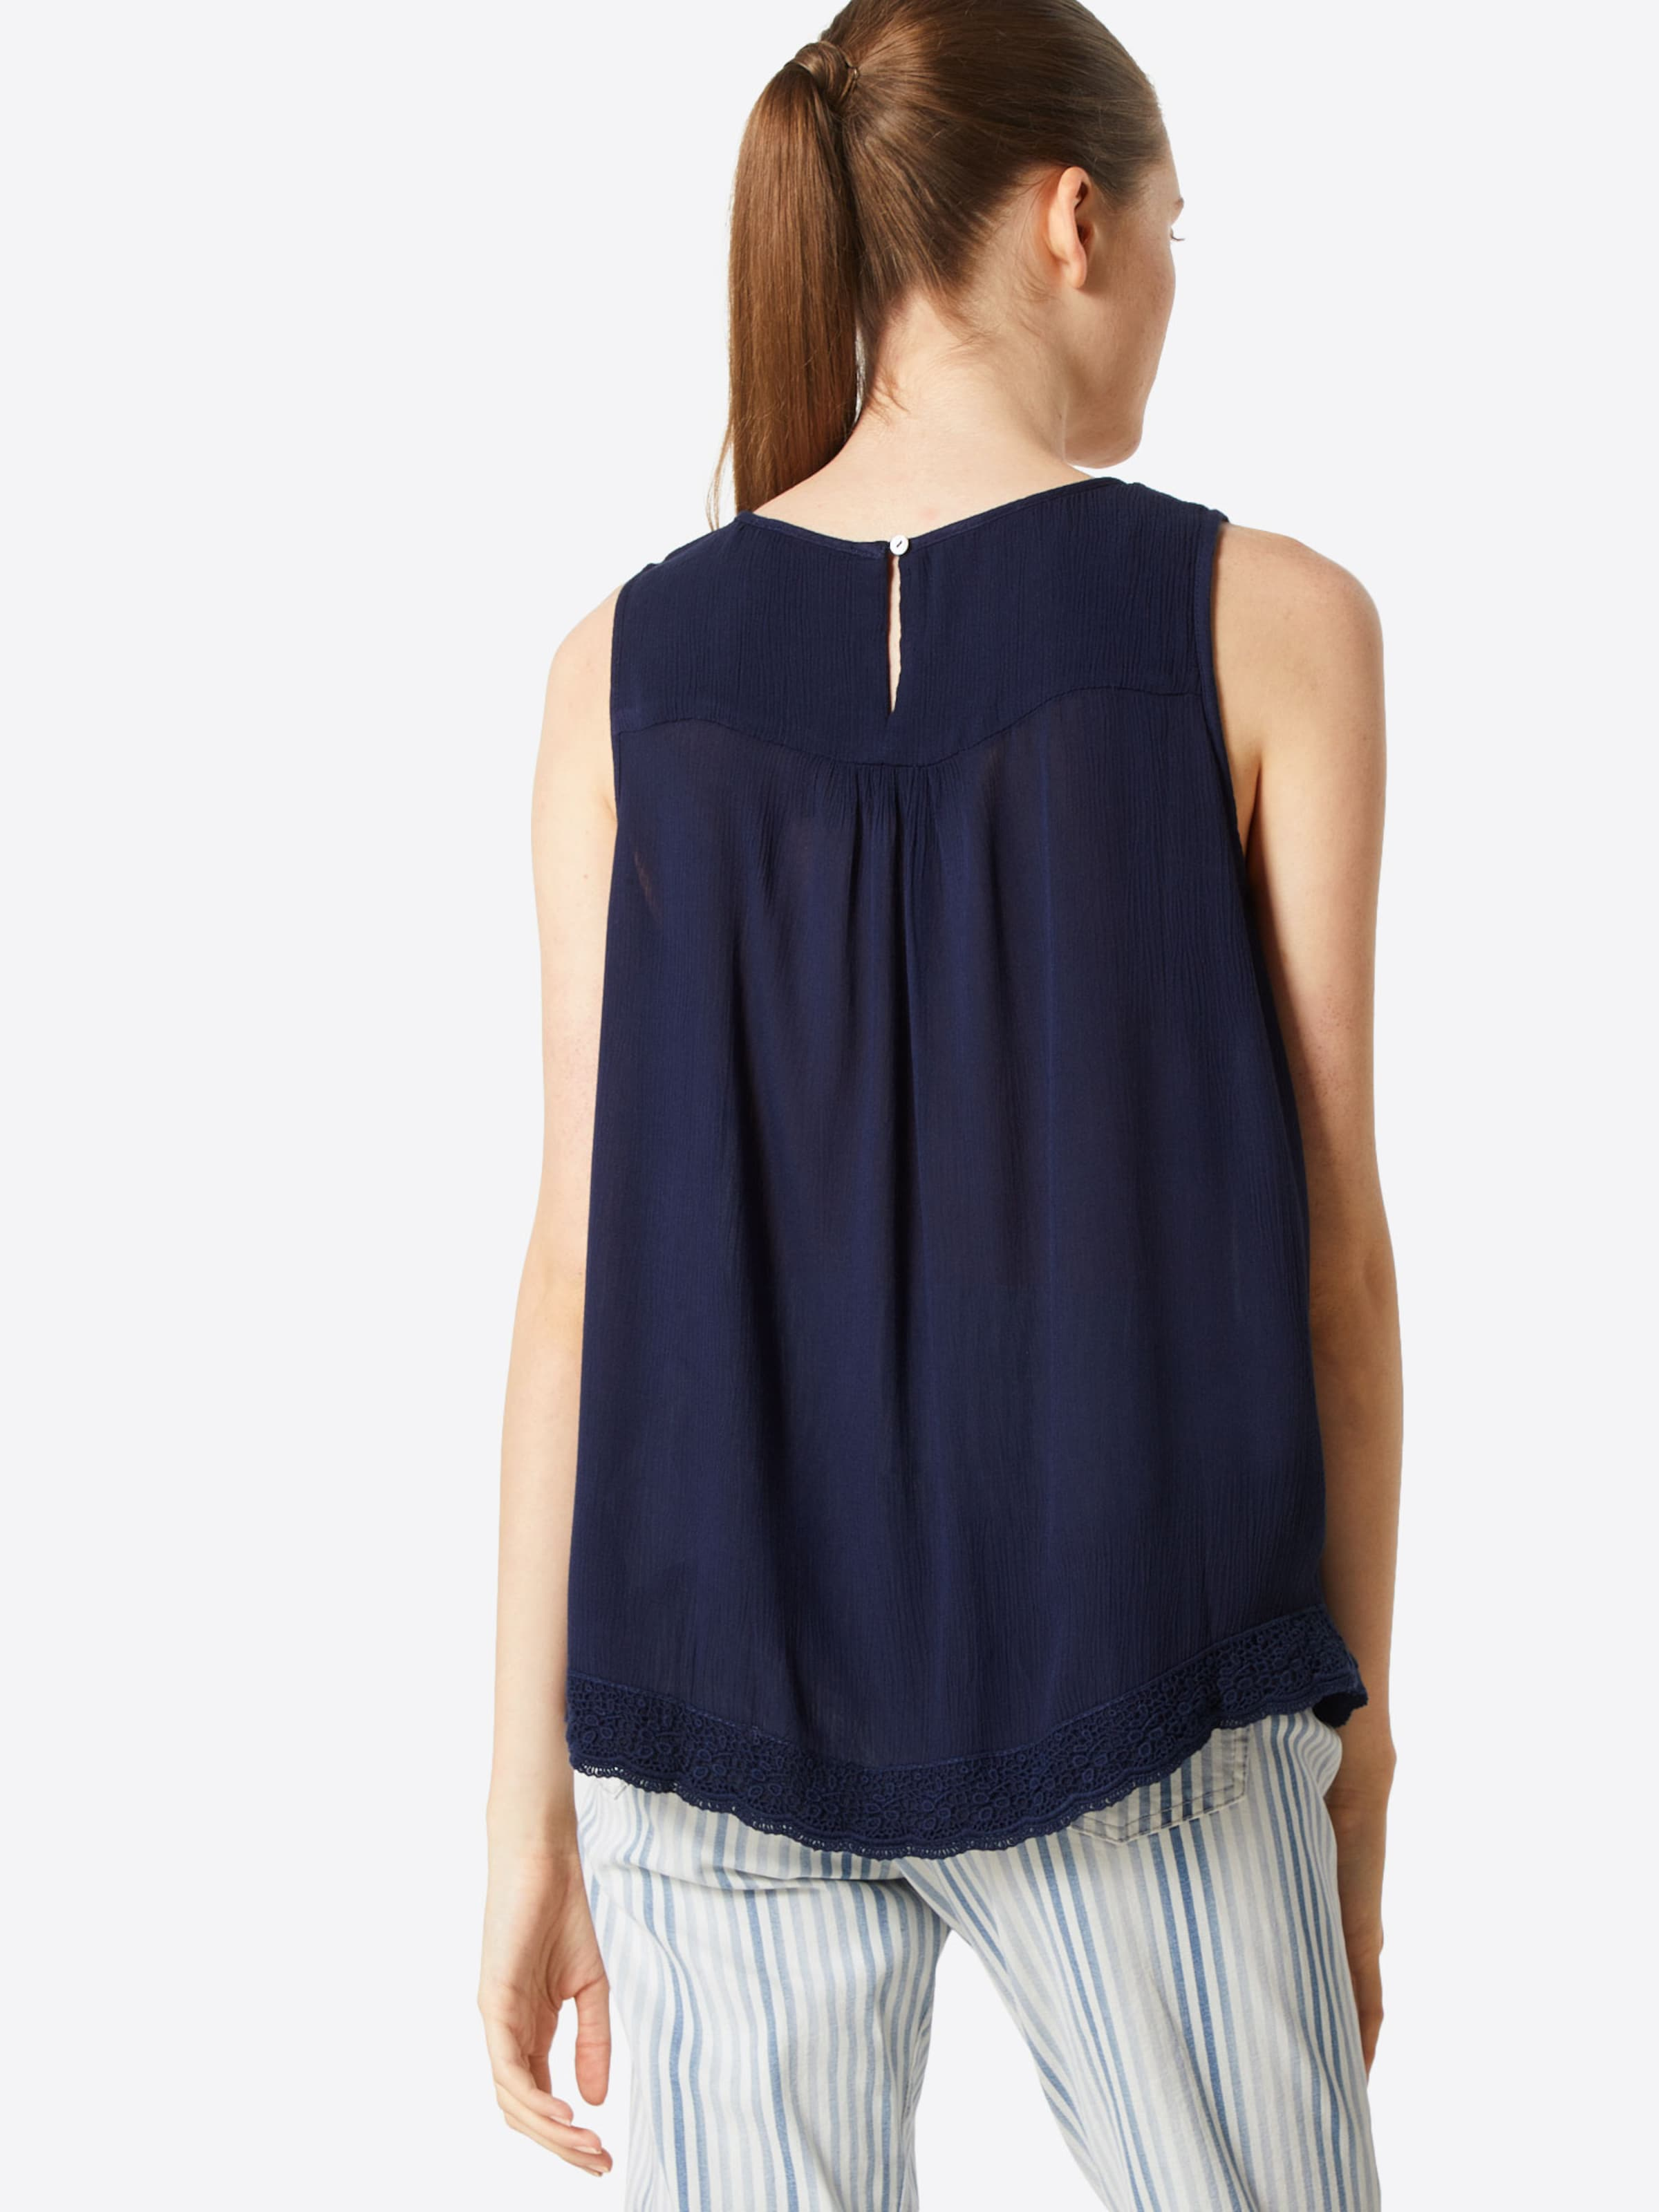 By Navy Bluse In Esprit Edc jpGSzqUVML